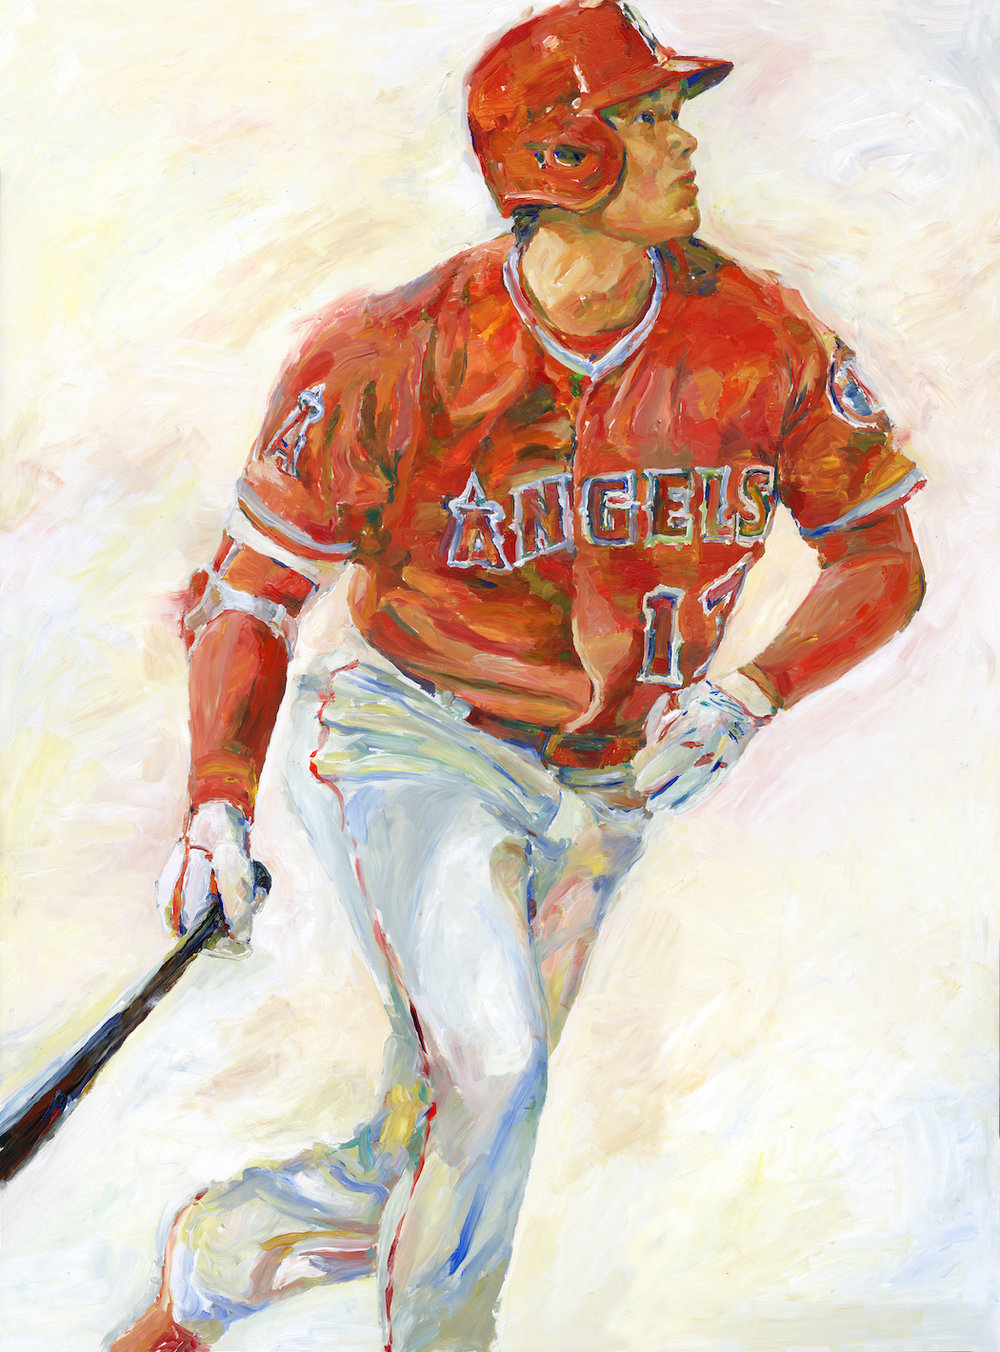 """Shohei Ohtani"" by Richard Sullivan, Acrylic on board, 36x48in, 2019 , POR"